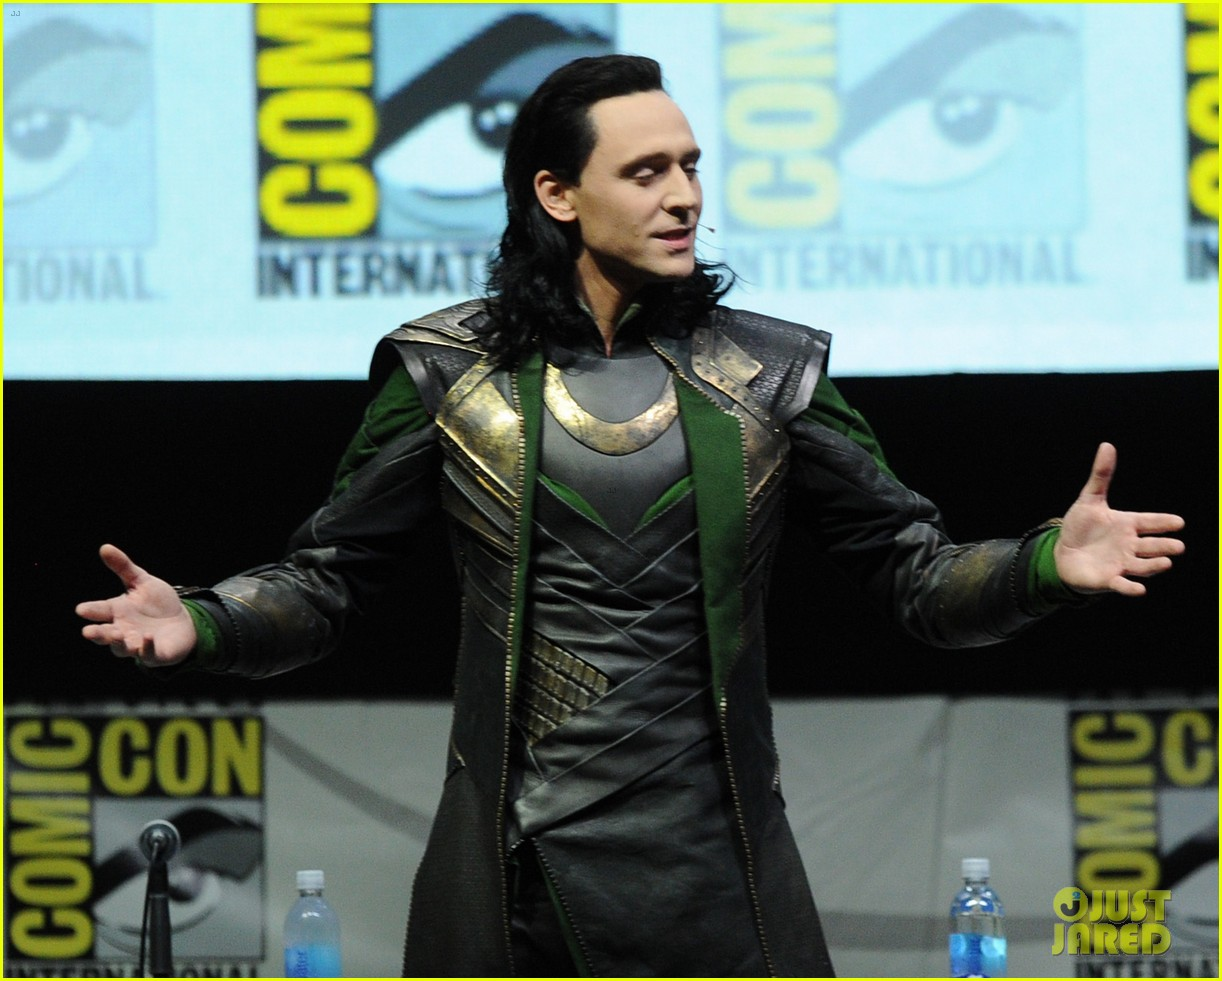 tom hiddleston attends thor comic con panel as loki 09